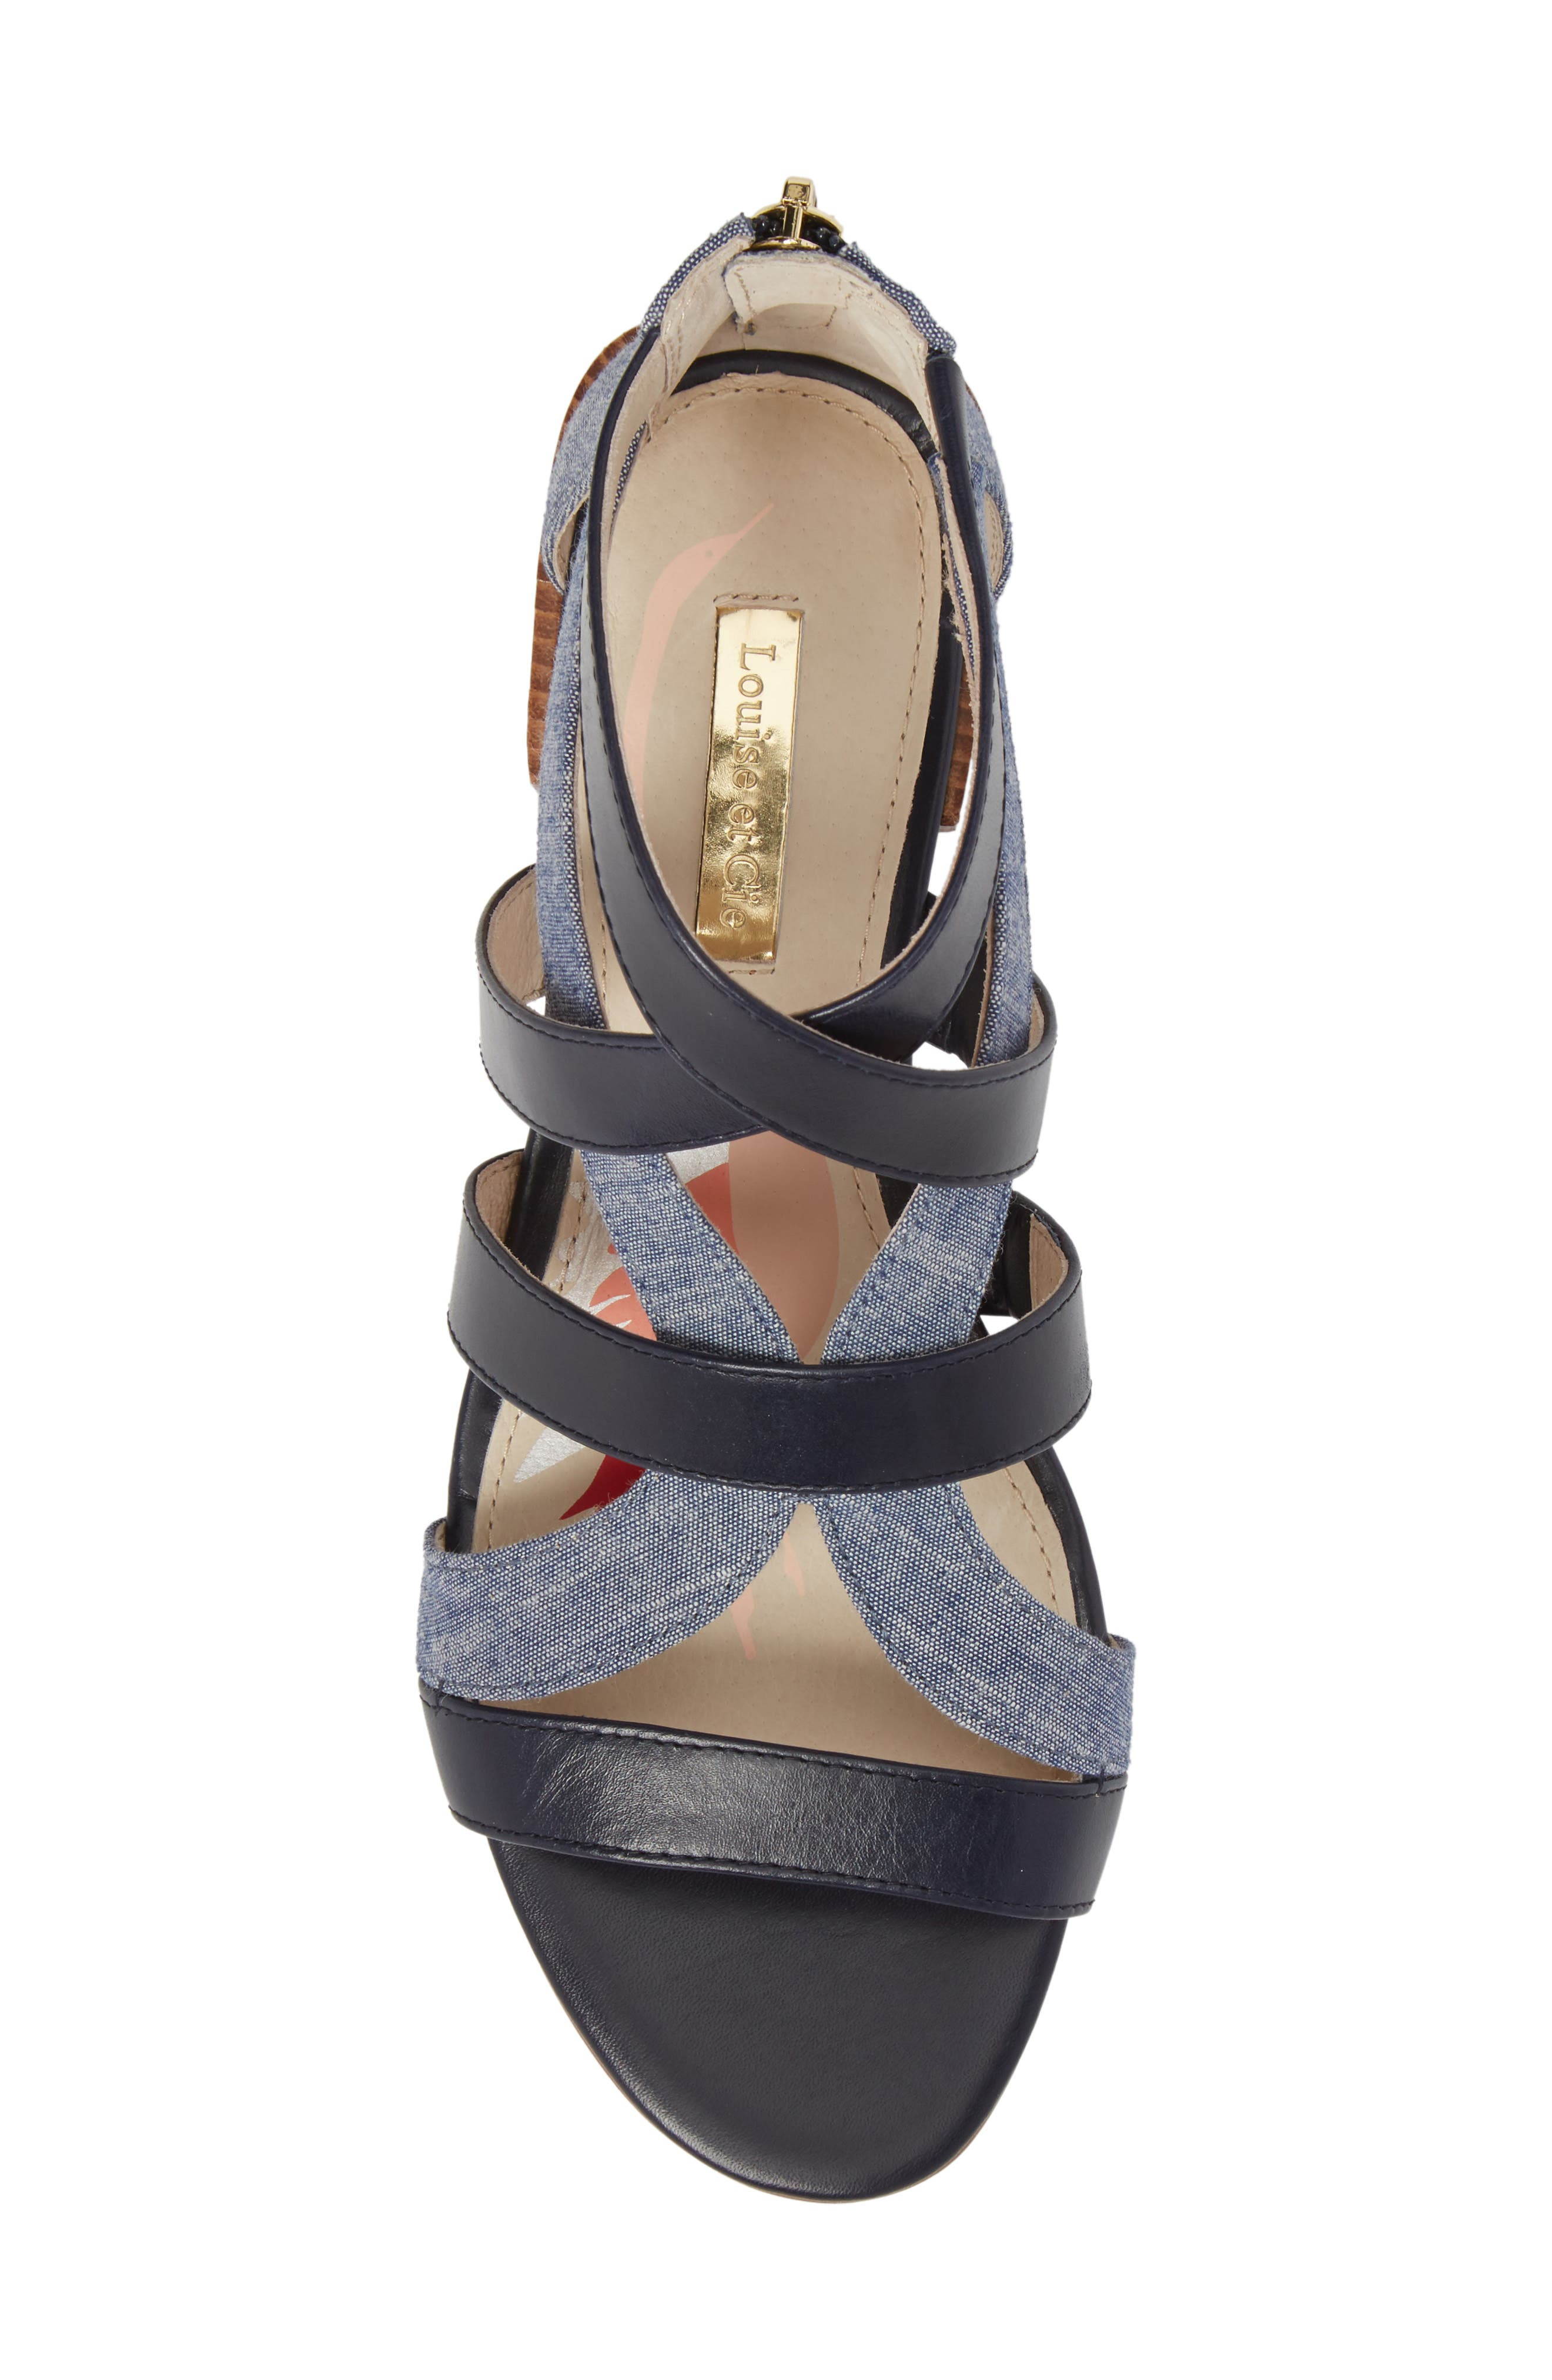 Almeyna Strappy Sandal,                             Alternate thumbnail 5, color,                             Blue Moon Leather